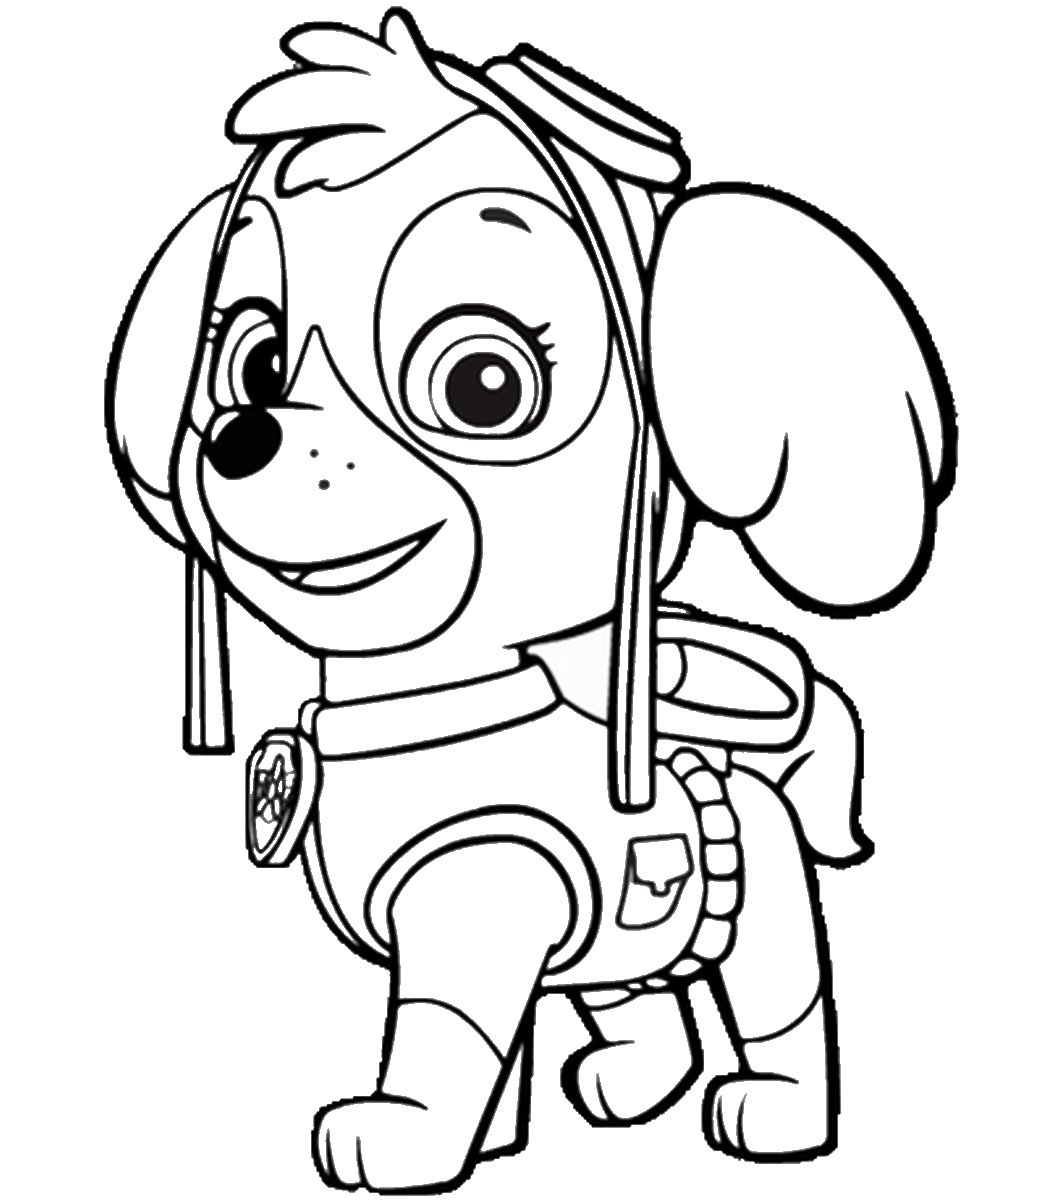 paw patrol coloring pages free top 10 paw patrol coloring pages of 2017 coloring paw free pages patrol